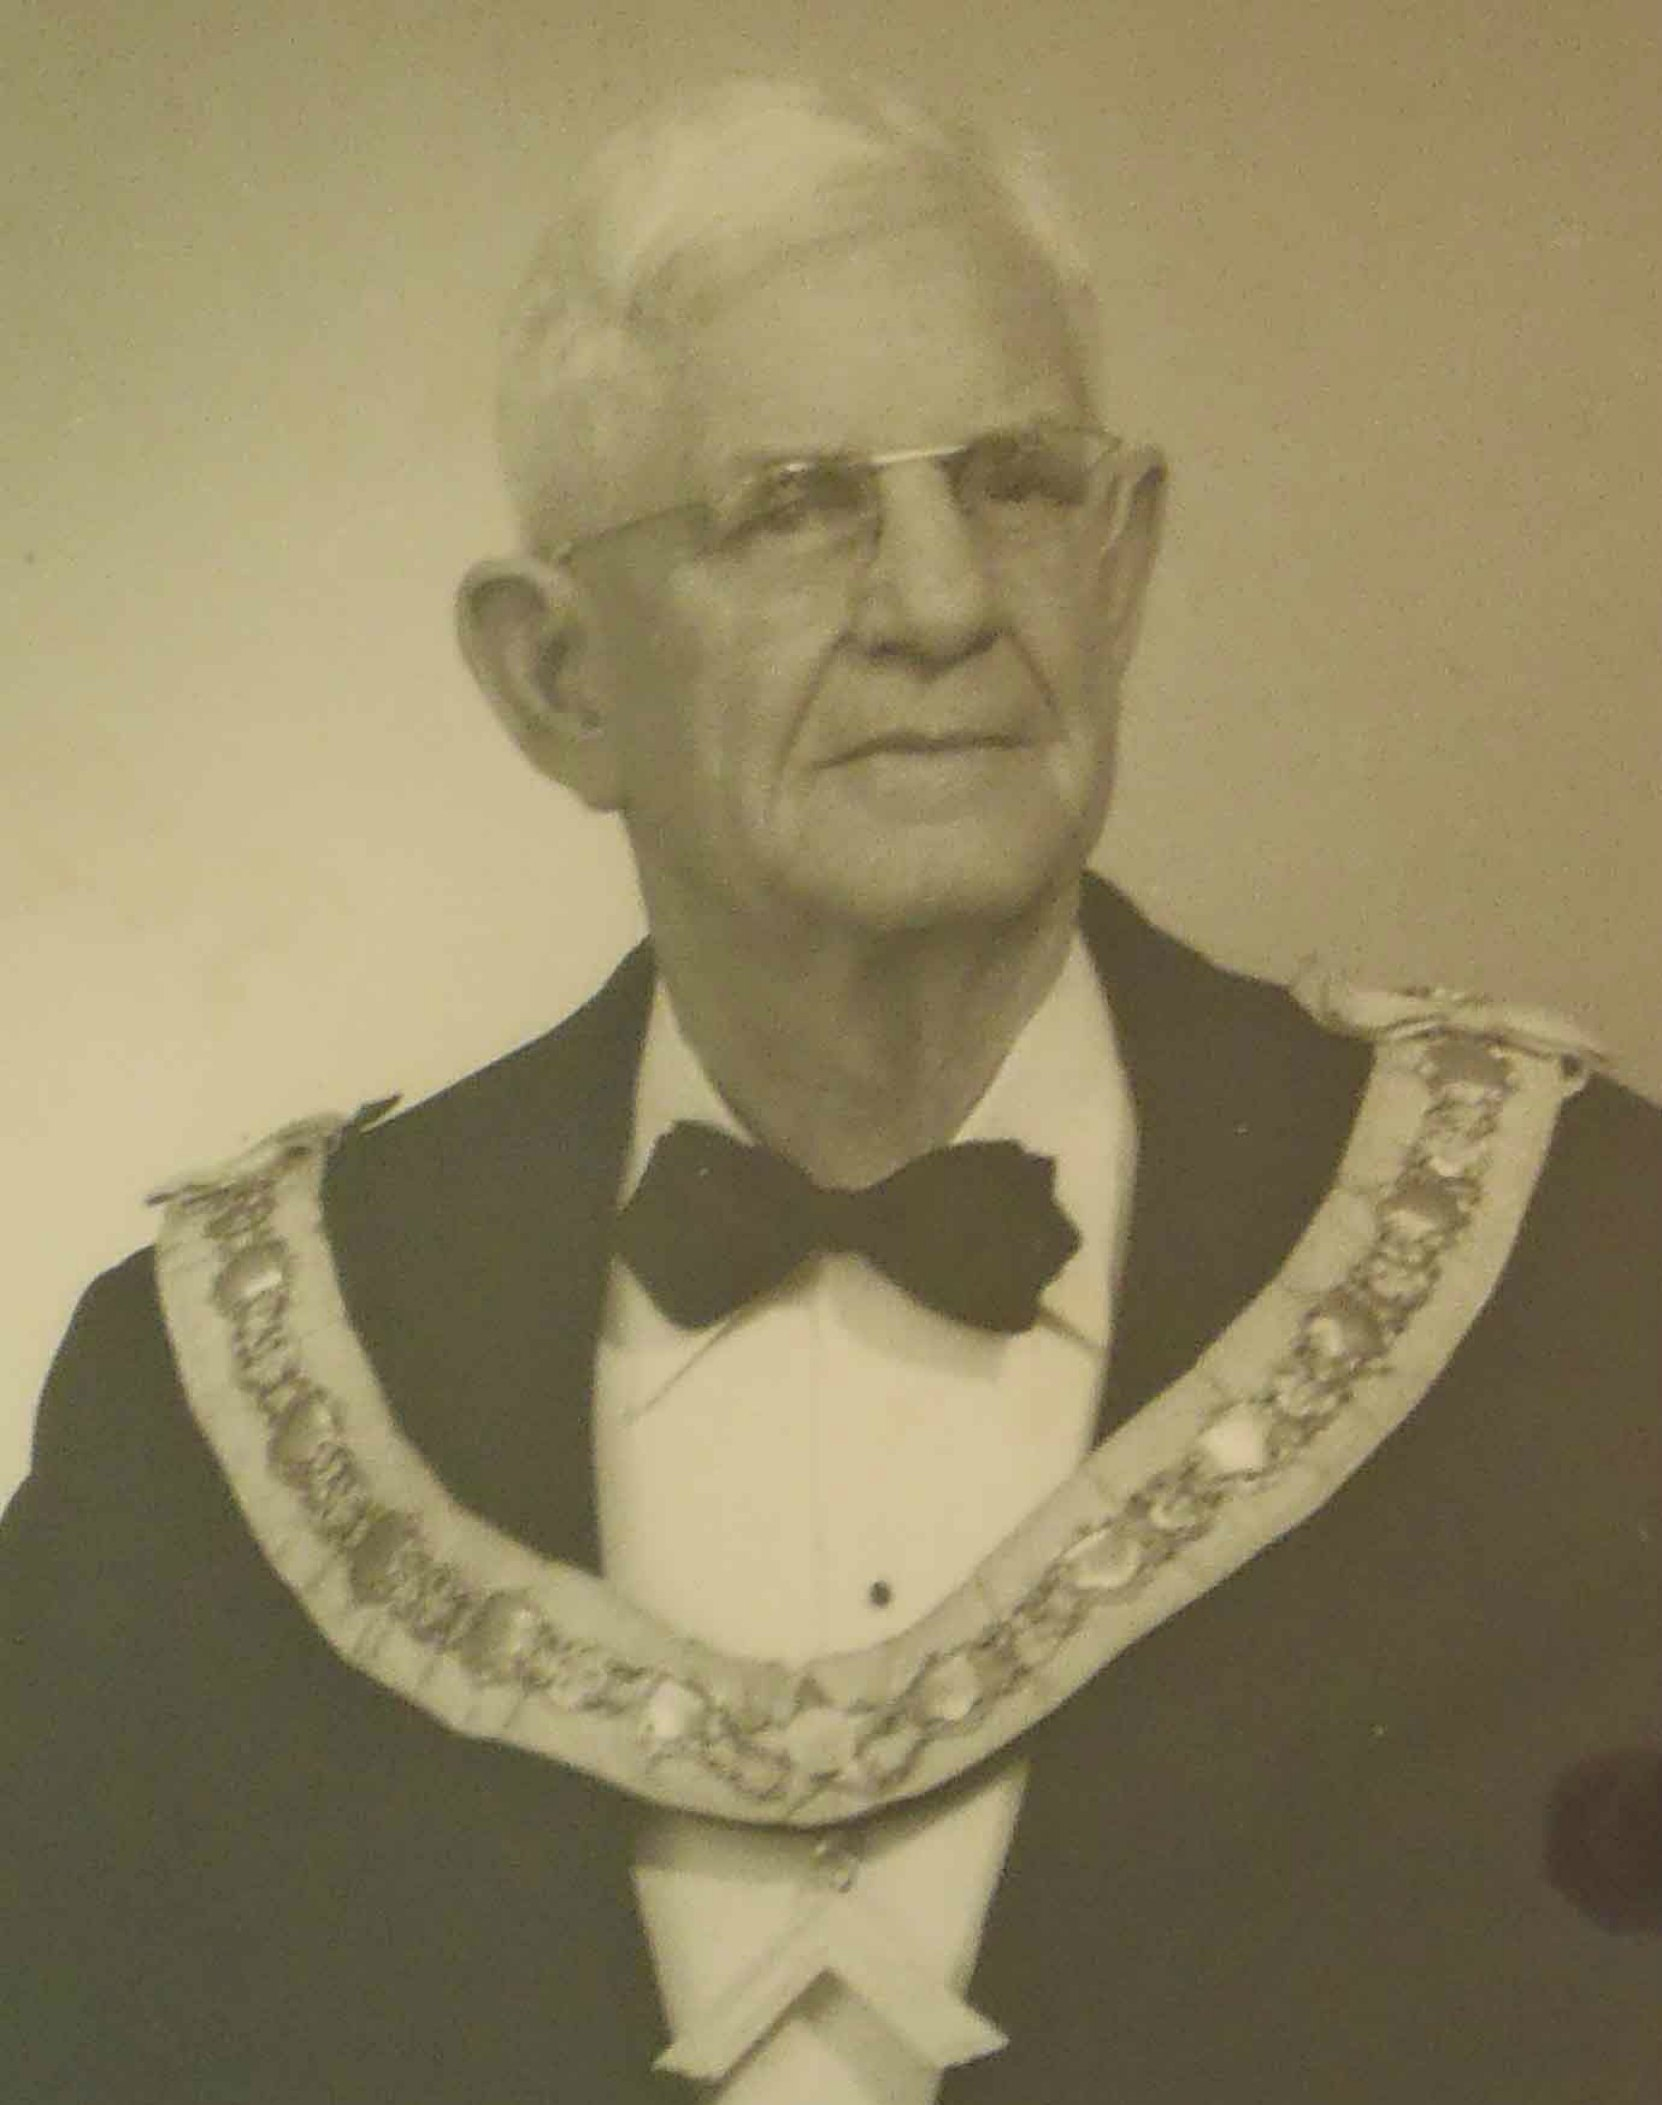 Charles William O'Neill, circa 1958